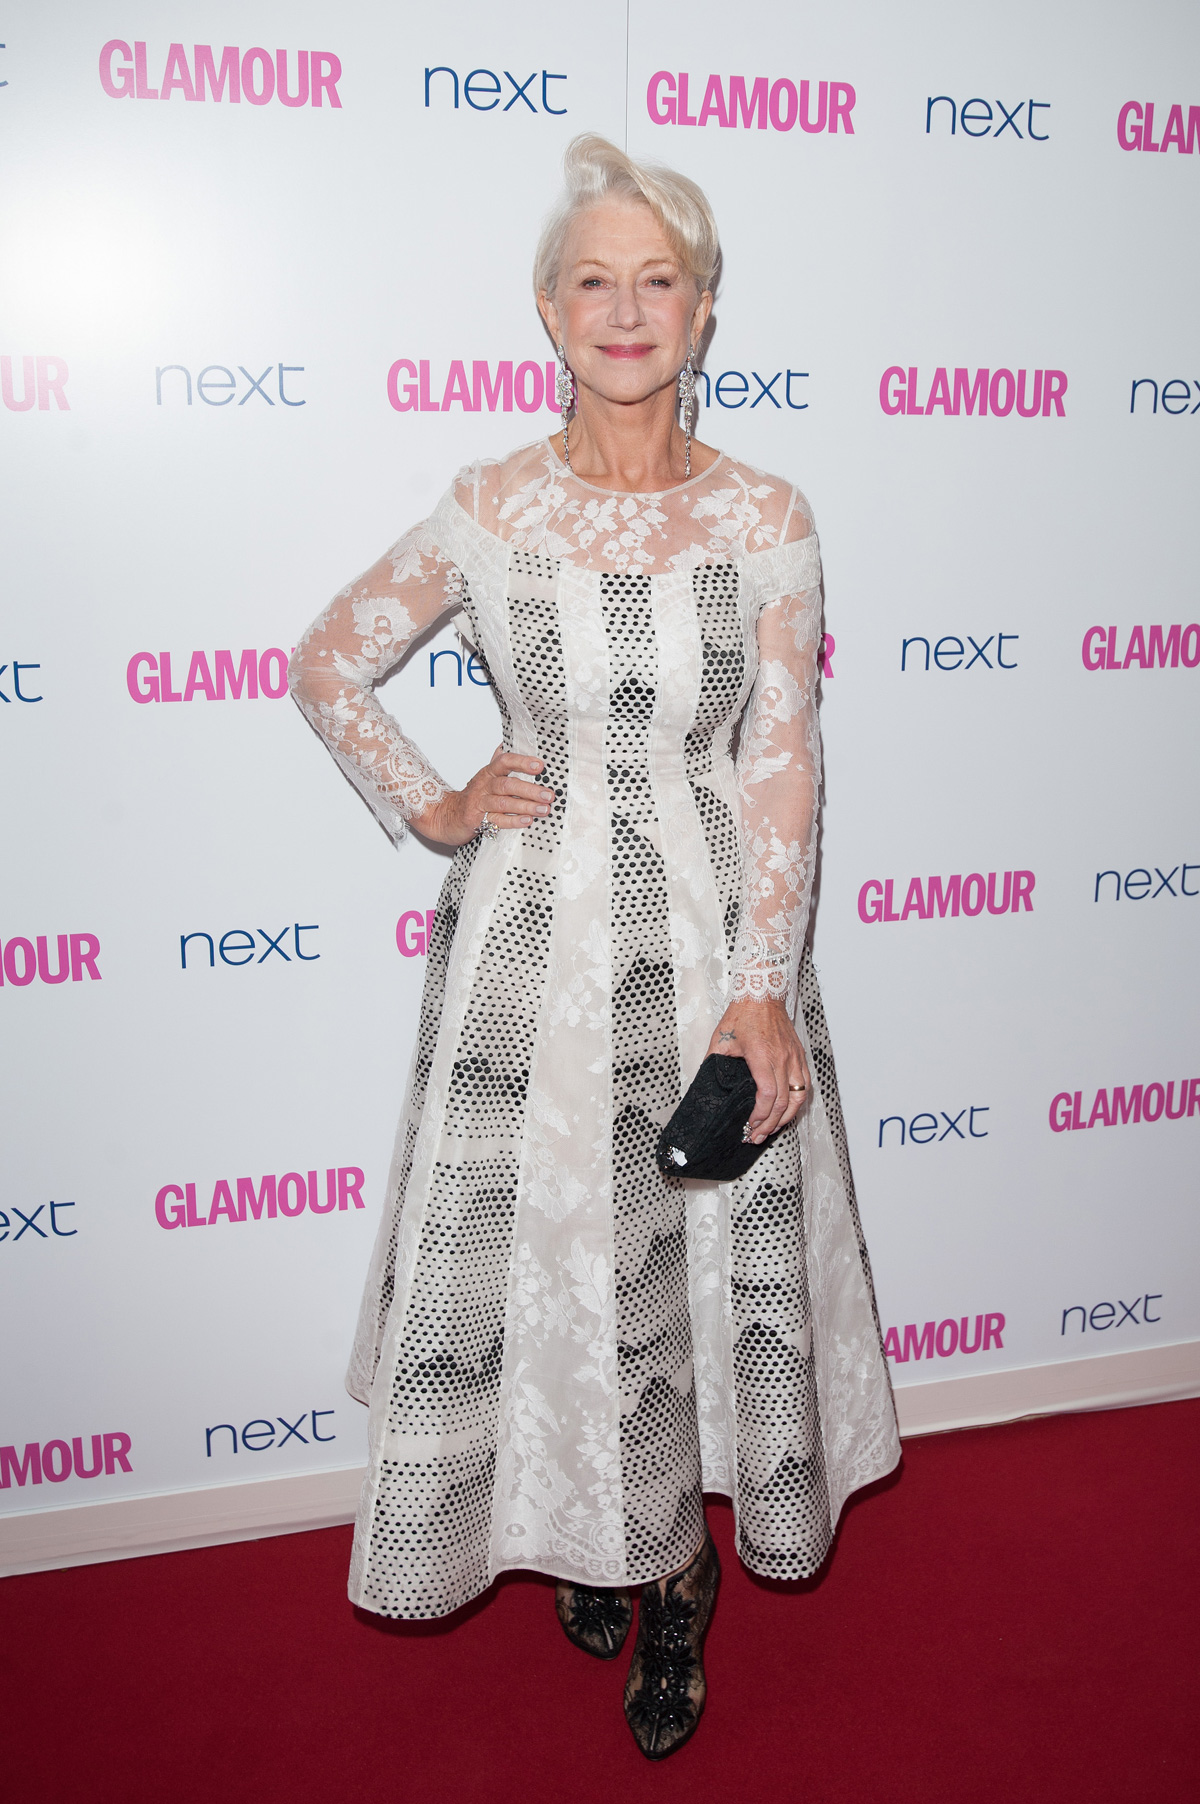 Helen Mirren at the Glamour Women of the Year Awards